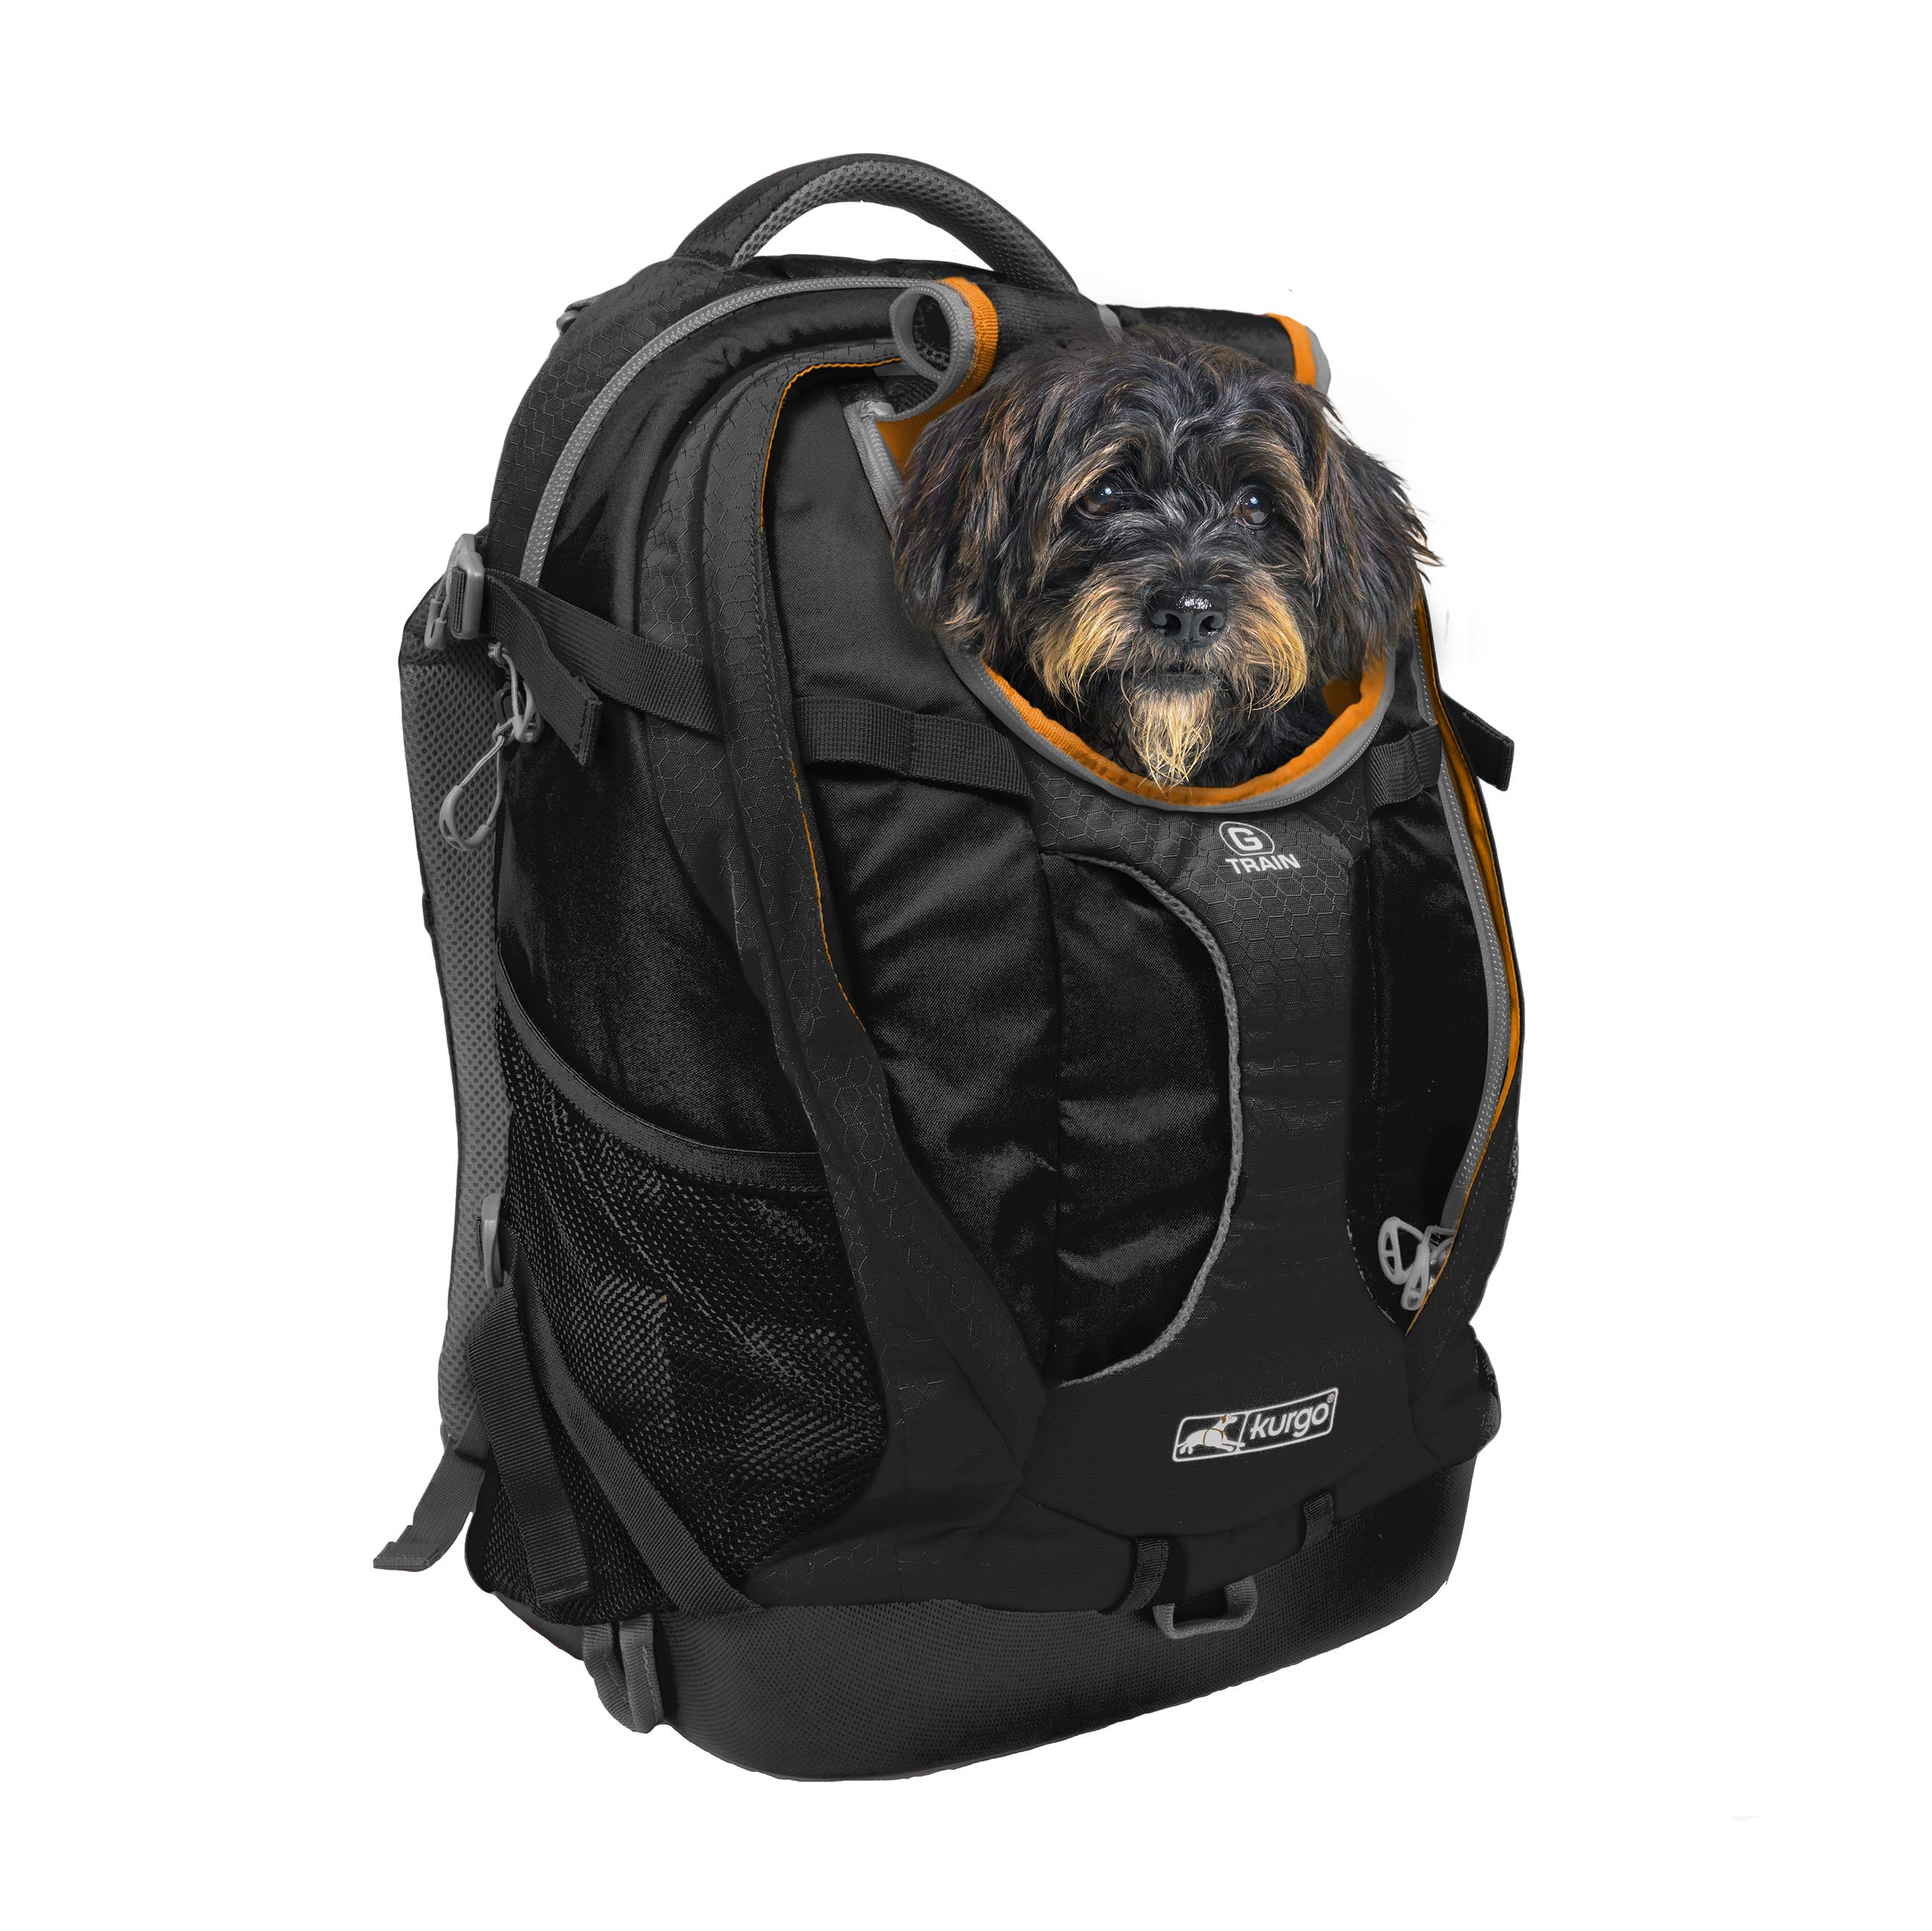 Kurgo Dog Carrier Backpack for Small Dogs & Cats | G-Train Pet Backpack Carrier | Airline Approved | Cat Backpack | Small Dog Backpack for Hiking & Travel | Lightweight | Waterproof Bottom (Black) by Kurgo